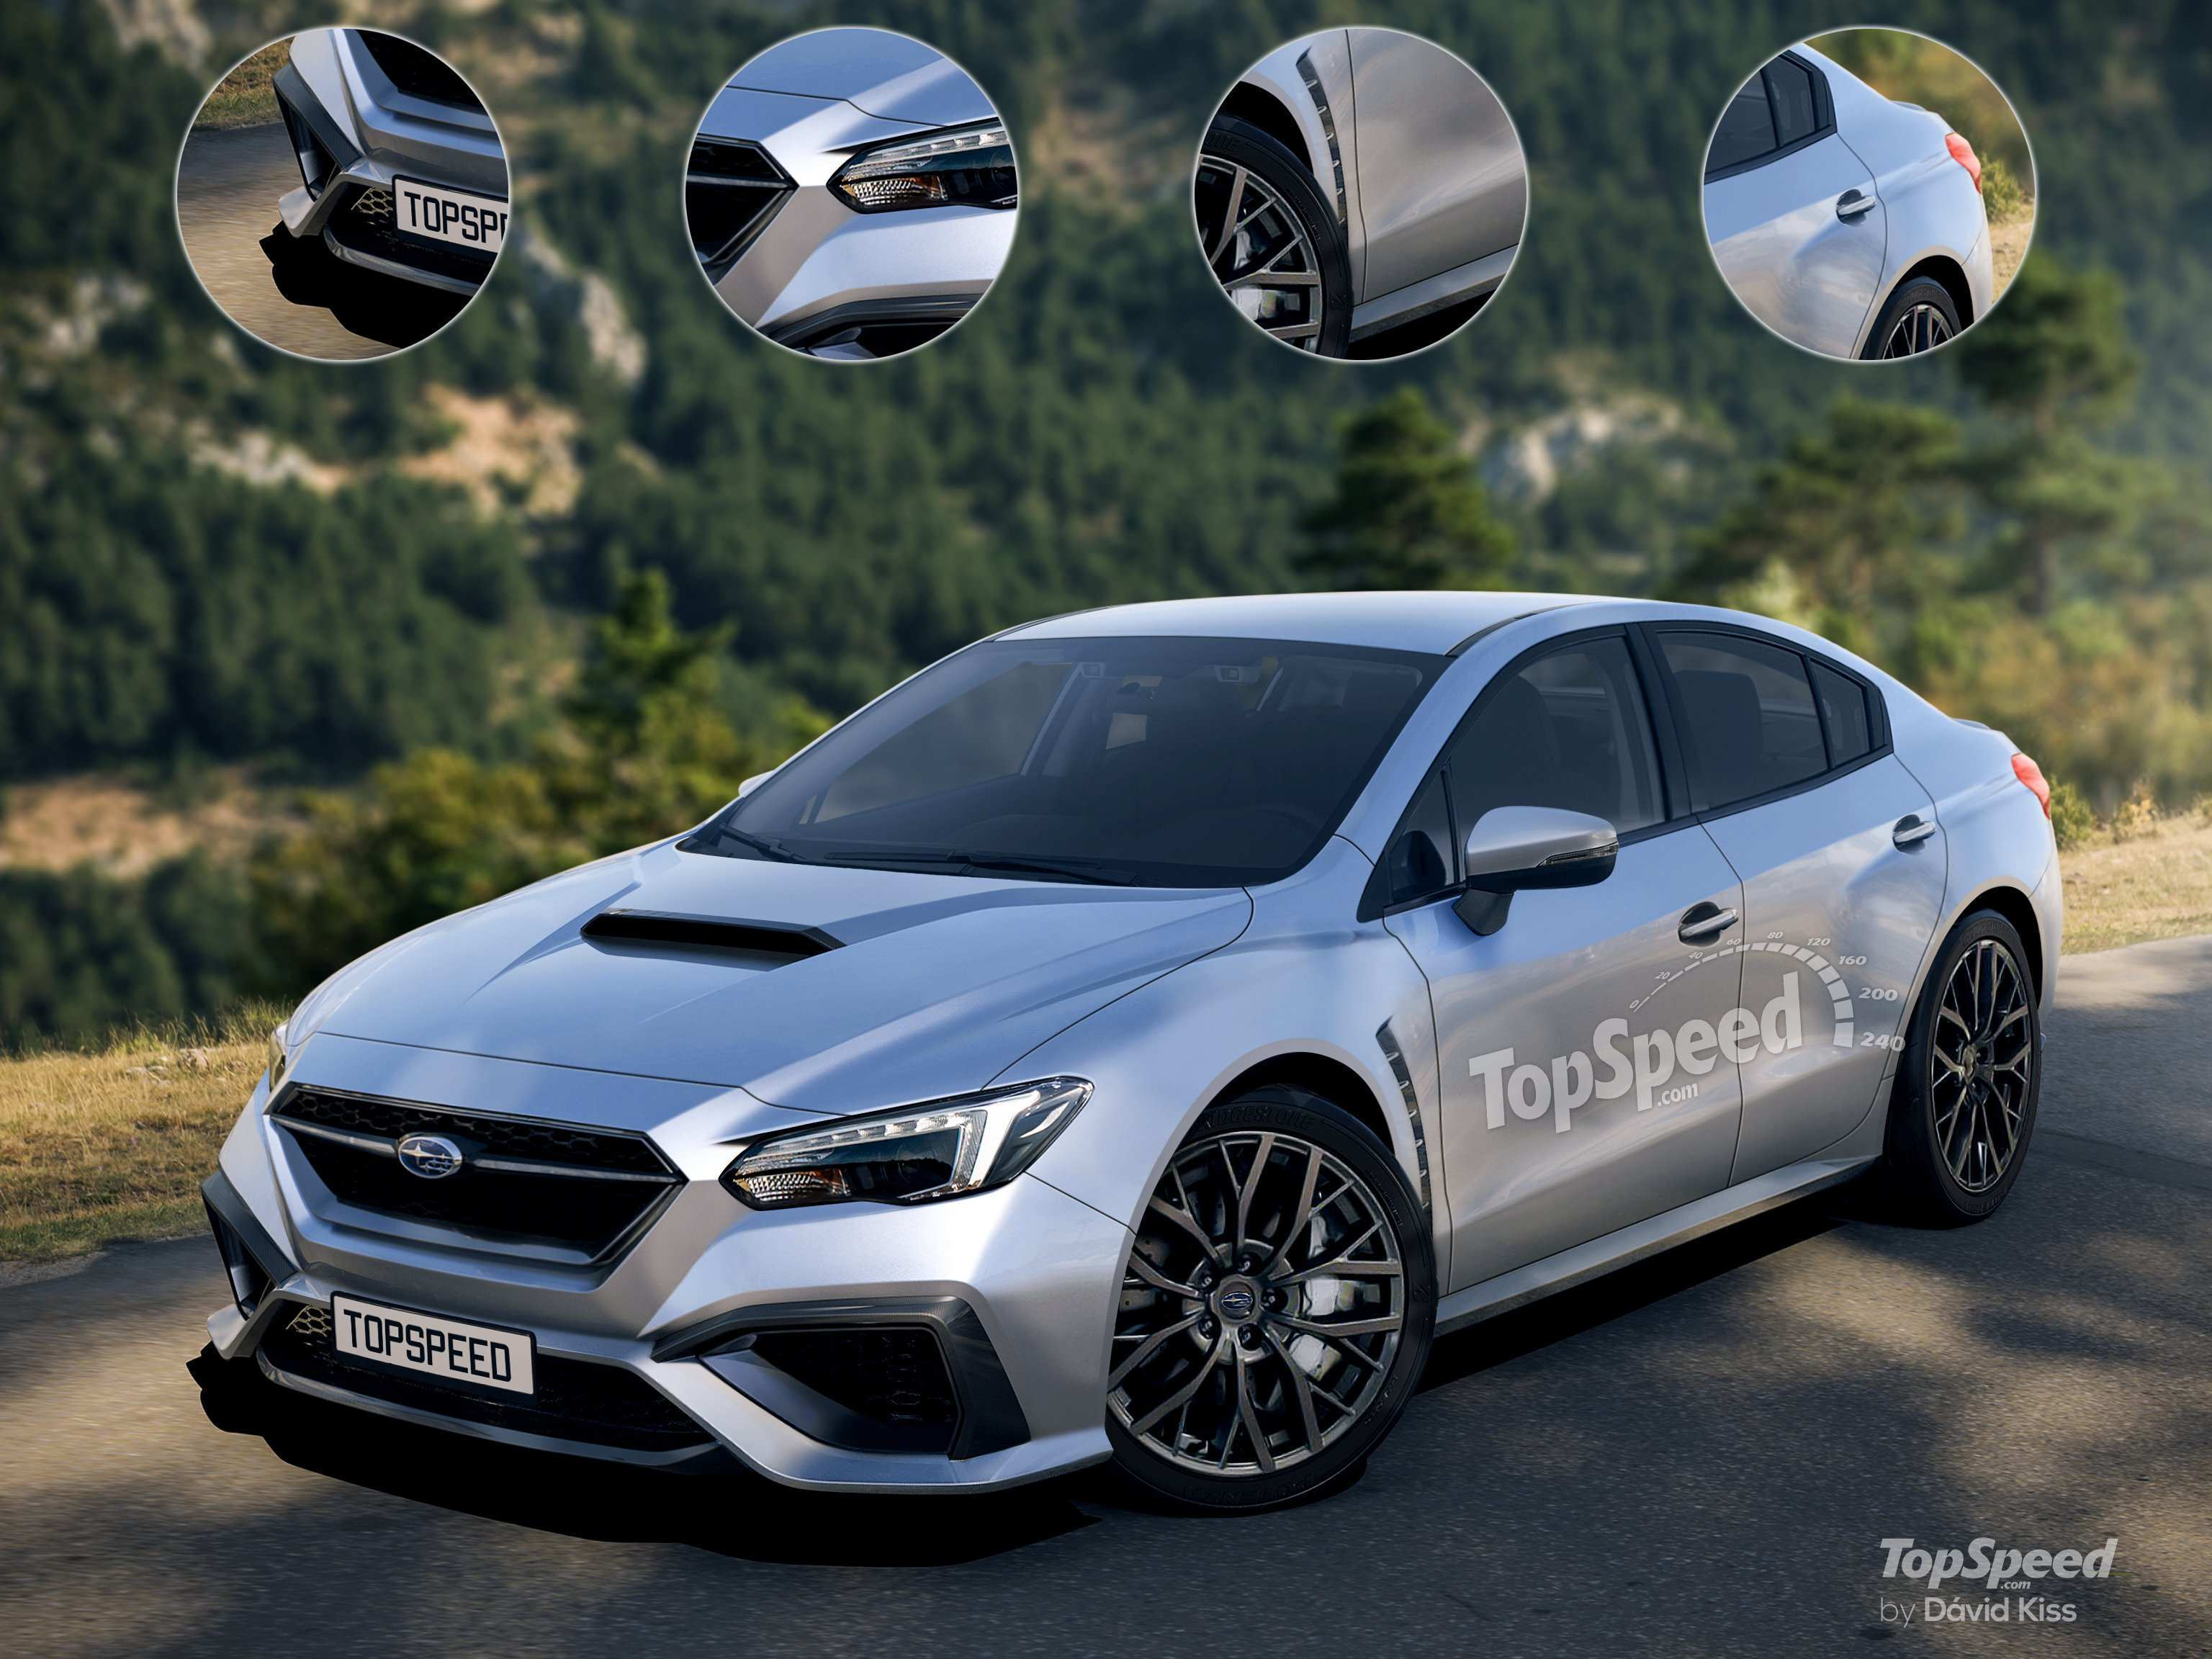 68 Concept of 2020 Subaru Sti Rumors Images for 2020 Subaru Sti Rumors